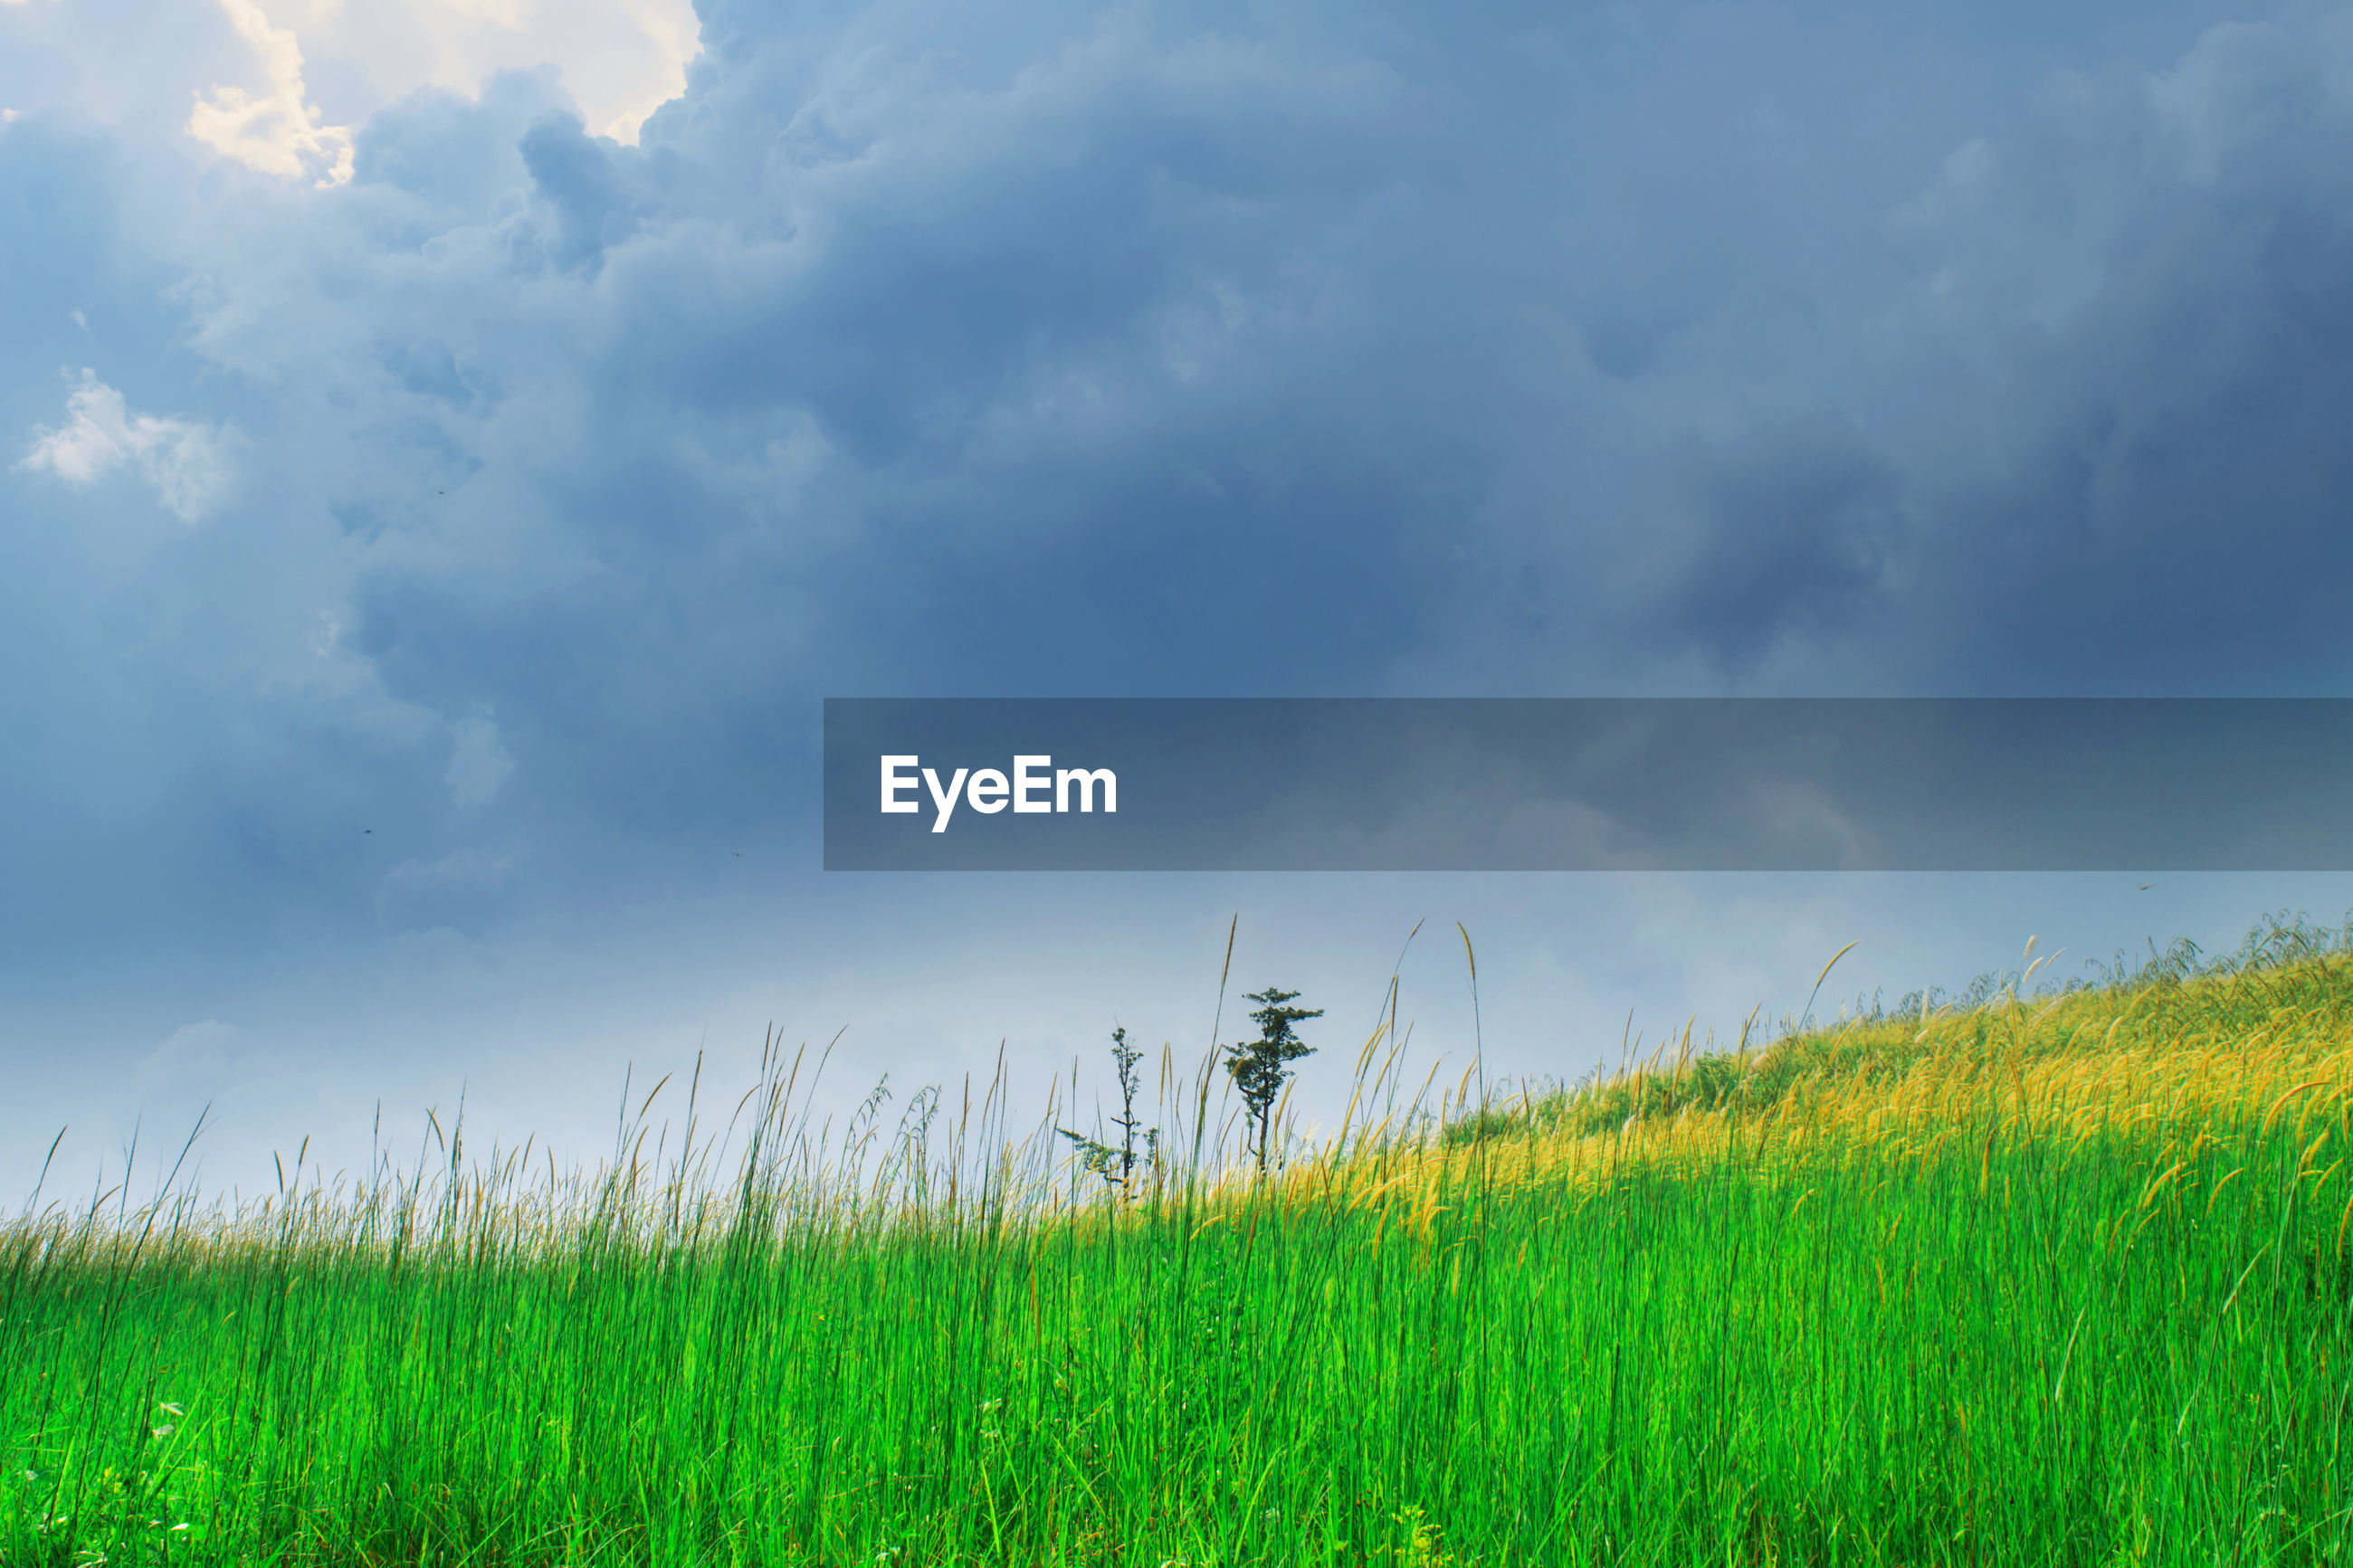 VIEW OF GRASSY FIELD AGAINST CLOUDY SKY